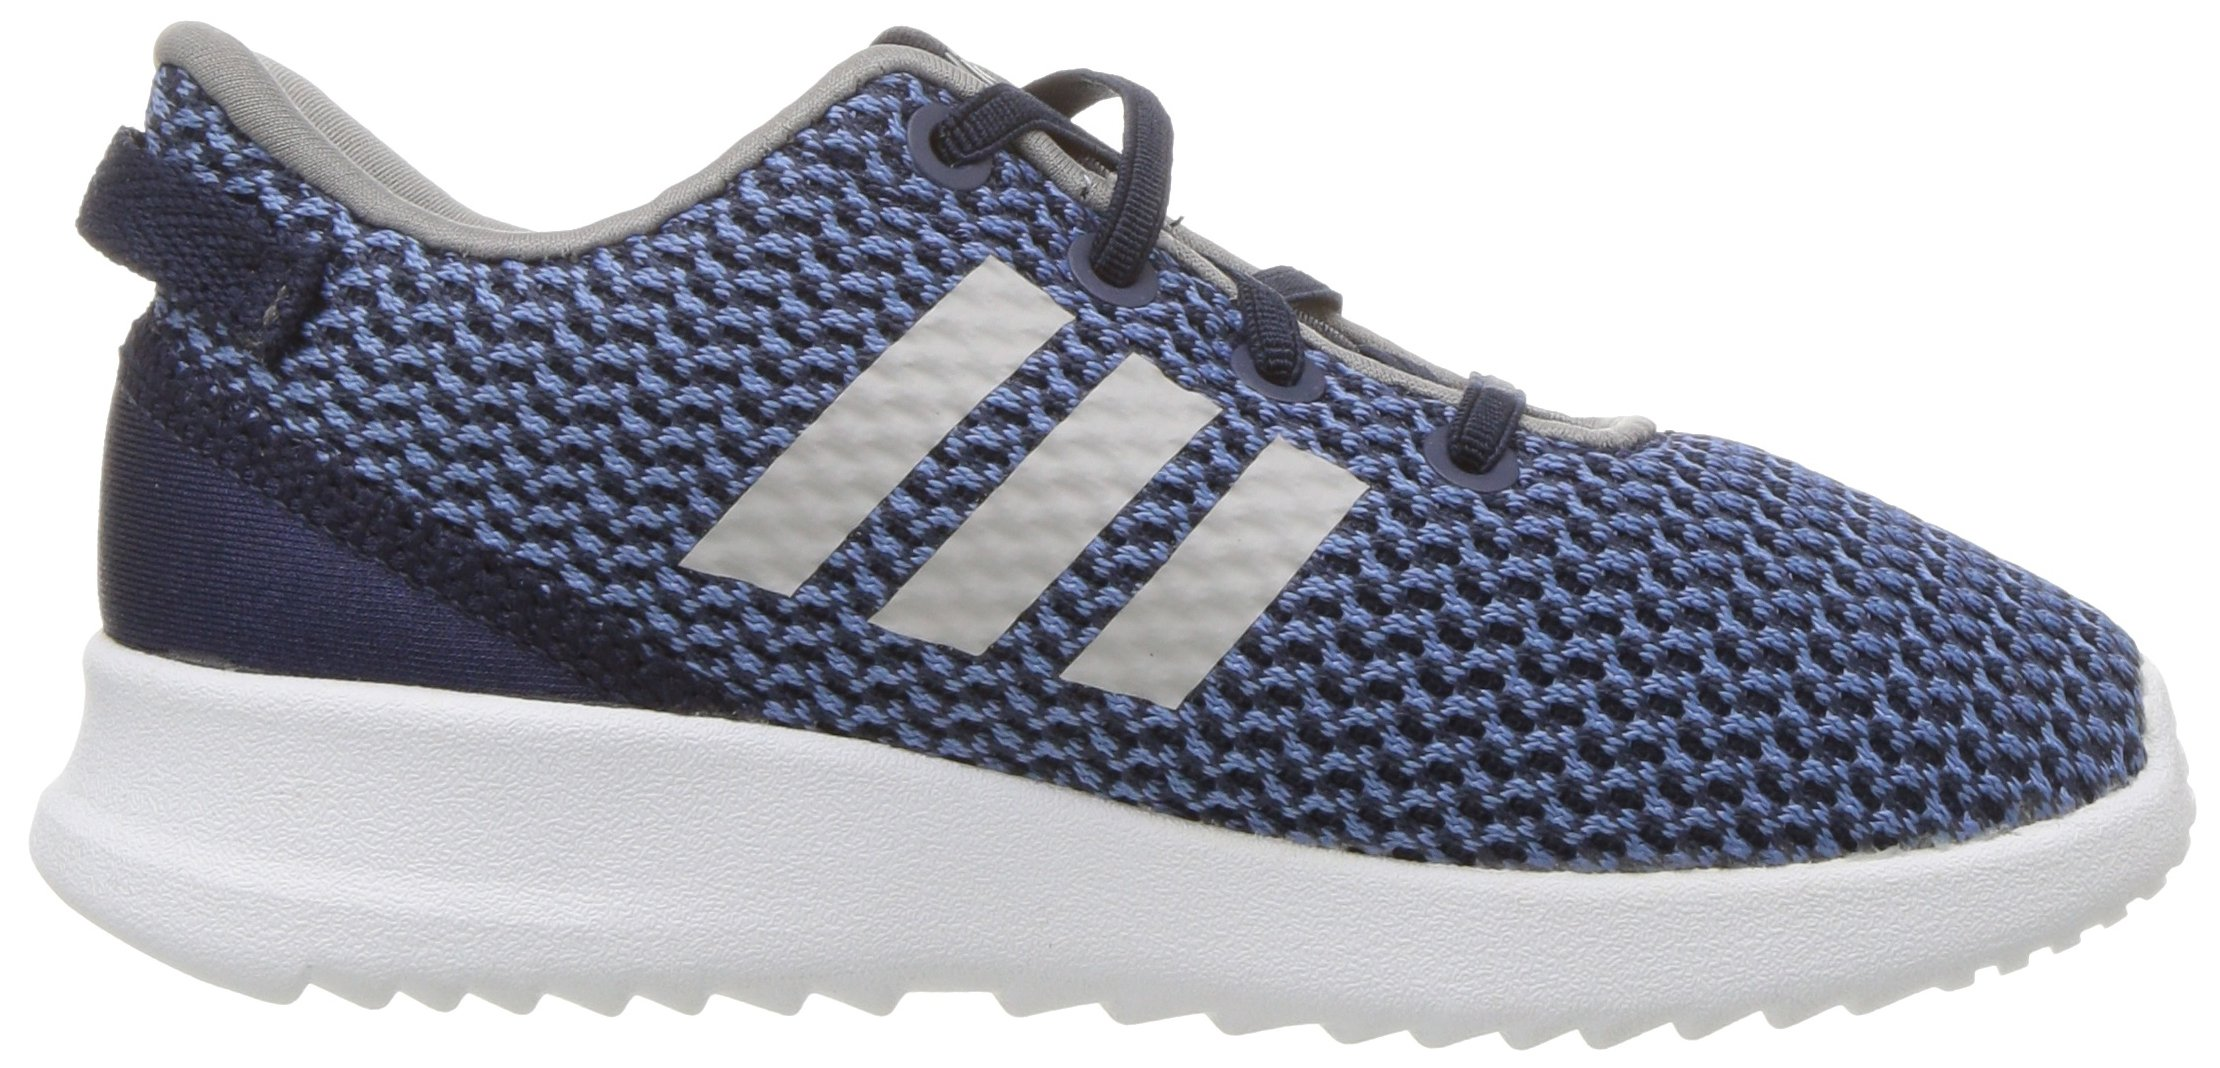 adidas Kids CF Racer TR Running Shoe, Collegiate Navy/Collegiate Navy/Grey, 3K M US Toddler by adidas (Image #7)